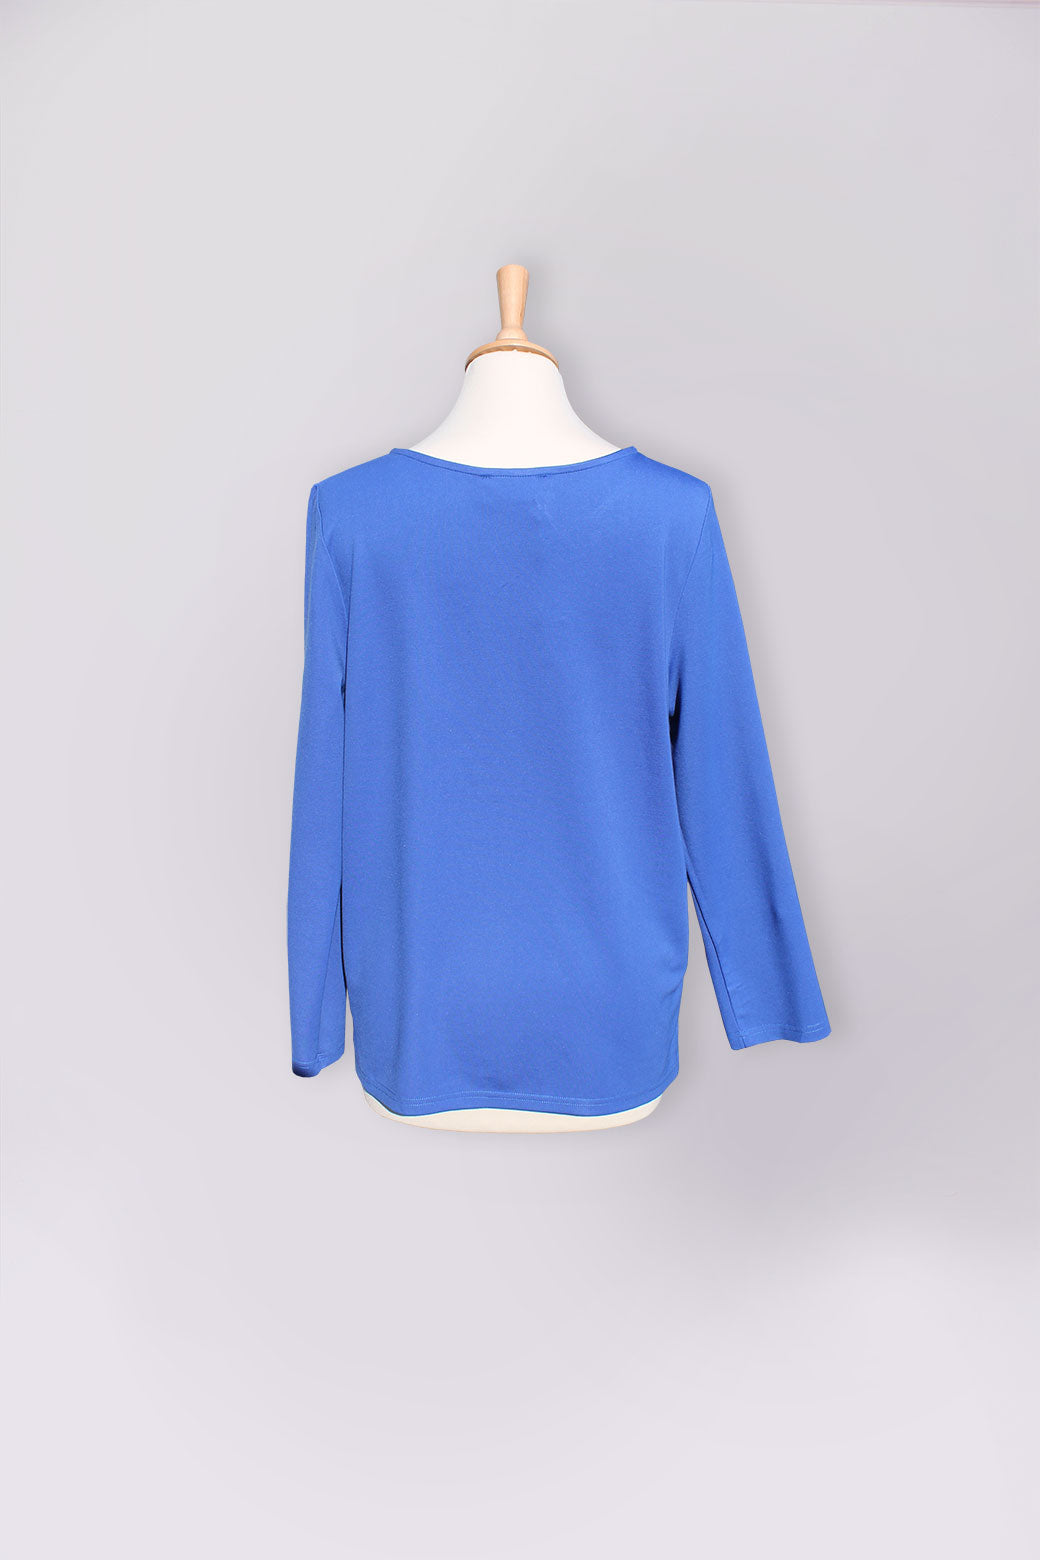 Easy Close Soft Top in Royal Blue